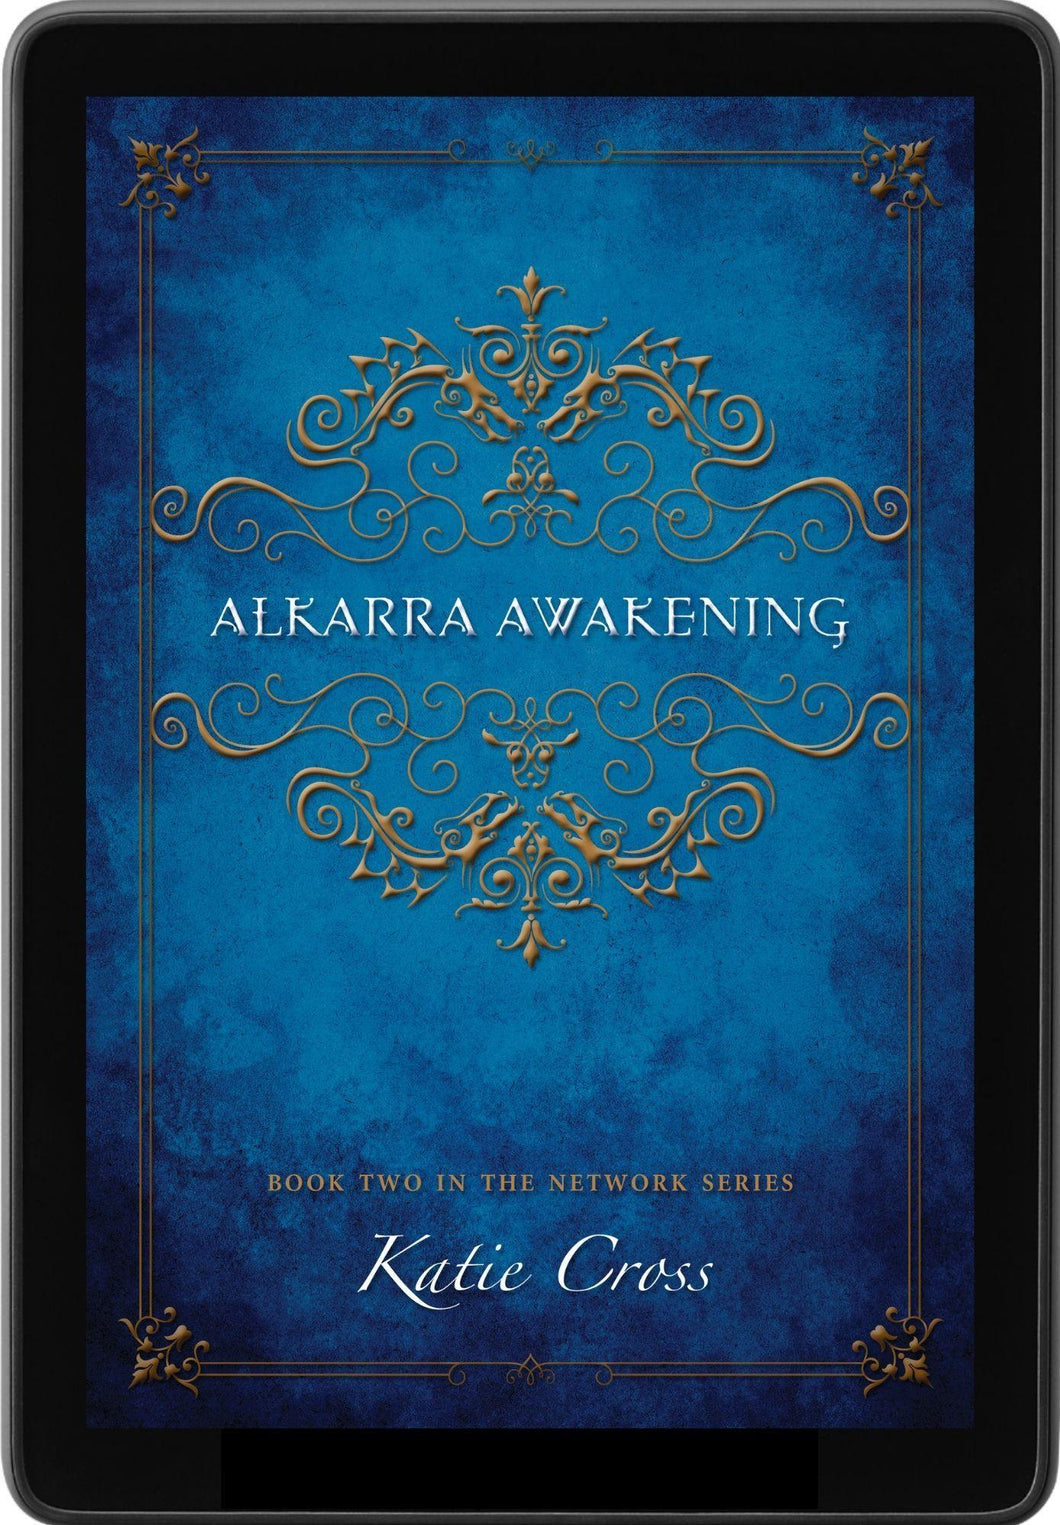 Alkarra Awakening (The Network Series Book 2)